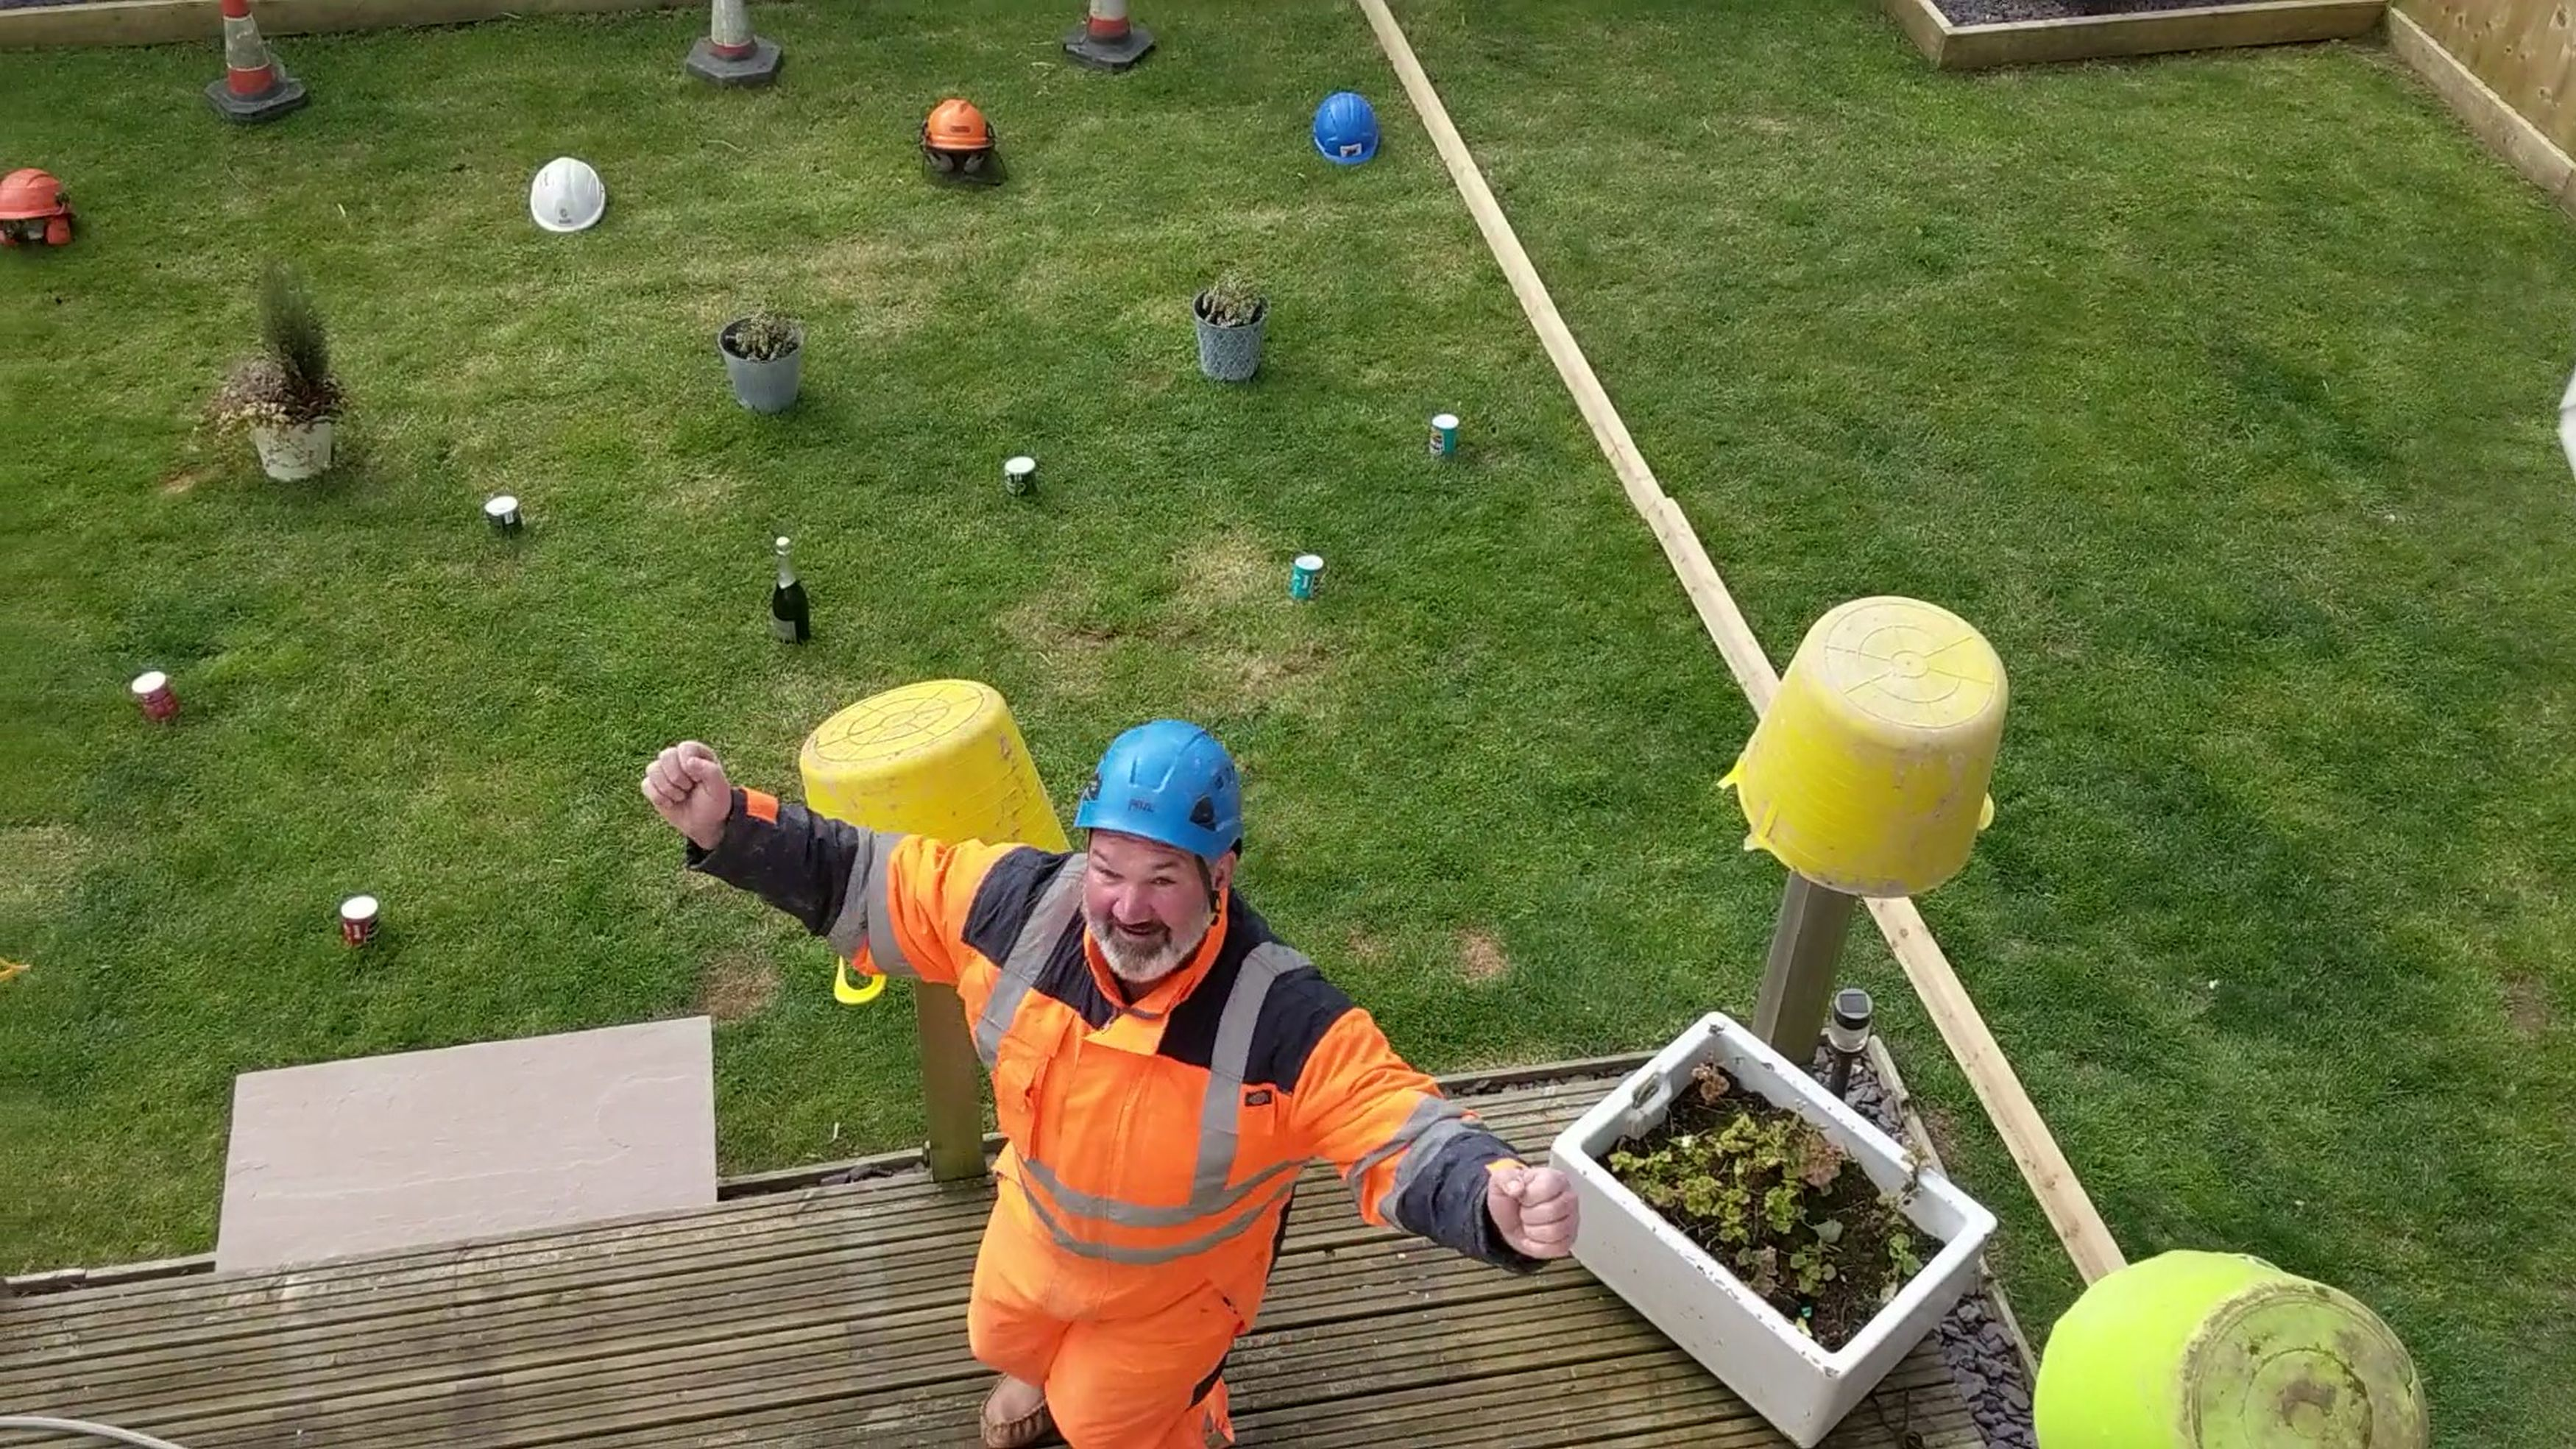 Granddad celebrates playing Space Invaders in garden